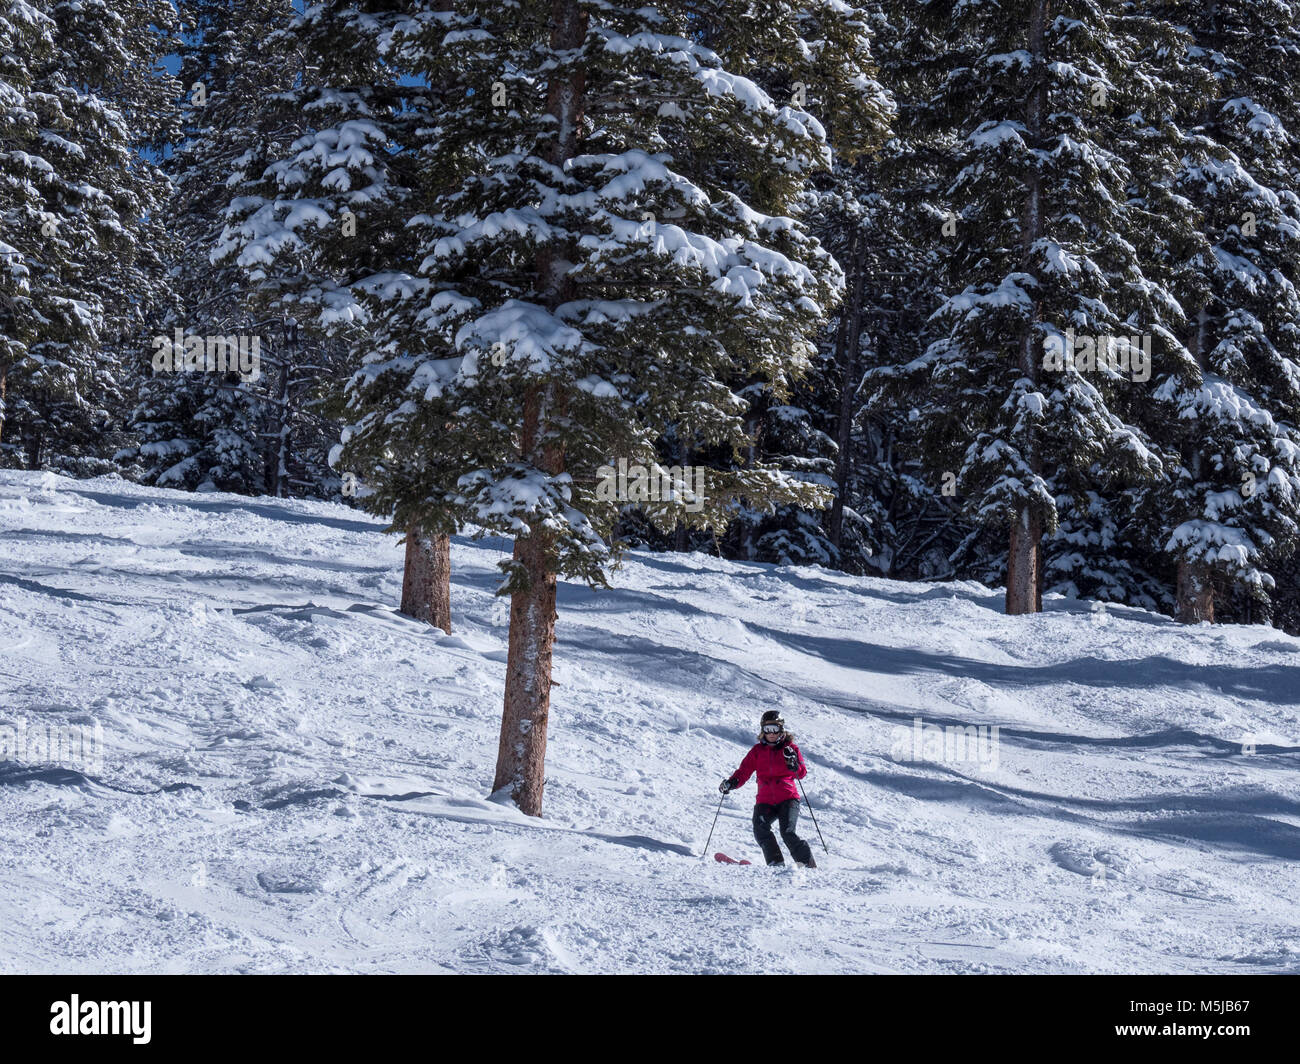 Skier Skier der Star Trail, Winter, Blue Sky Basin, Skigebiet Vail, Vail, Colorado. Stockbild